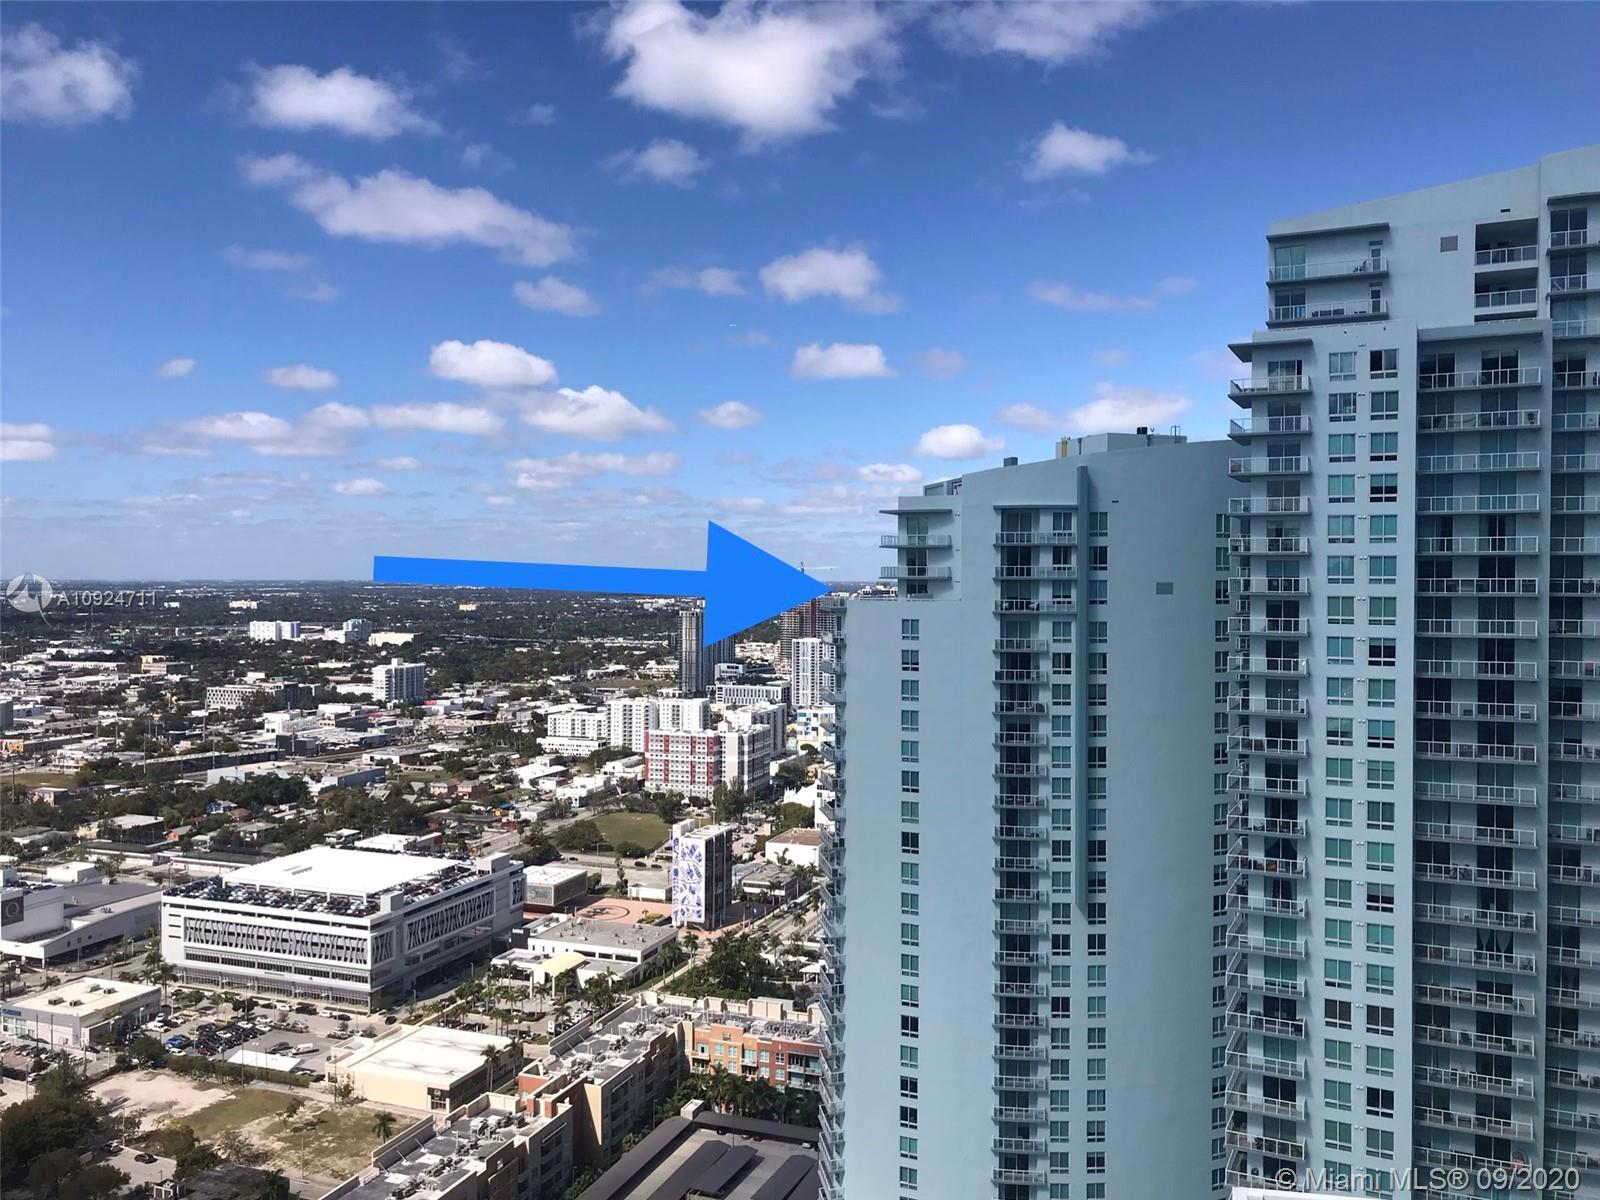 UNIQUE LANAI BALCONY PENTHOUSE AT QUANTUM ON THE BAY, LIKE NO OTHER! AMAZING 1,765 SQ FT 2 BDRM/2 BA